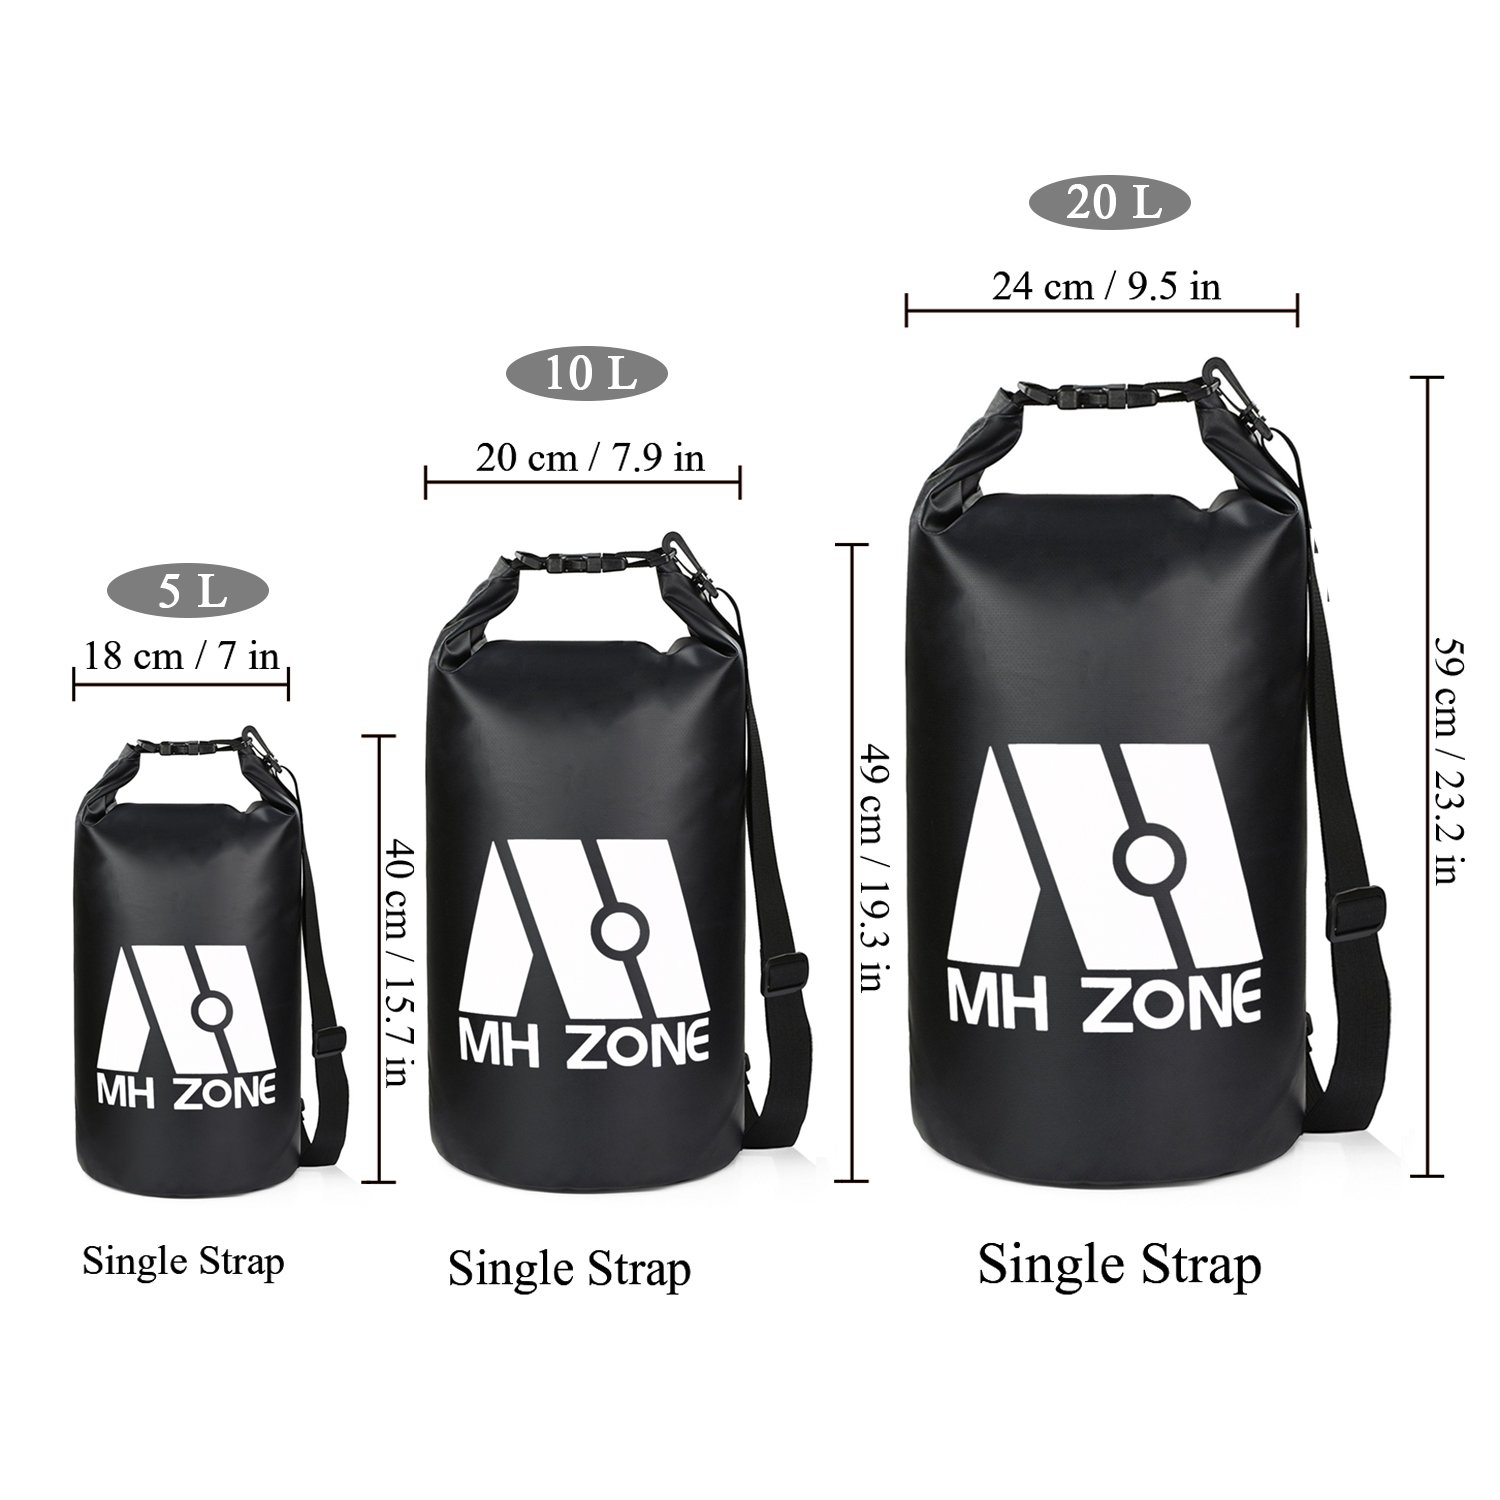 Waist Pouch /& Phone Case Detachable Shoulder Strap Fishing Kayaking M MH ZONE Rafting Swimming and Beach Swimming and Beach Fit for Boating 20L Black MH Zone Waterproof Dry Bags Set of 3